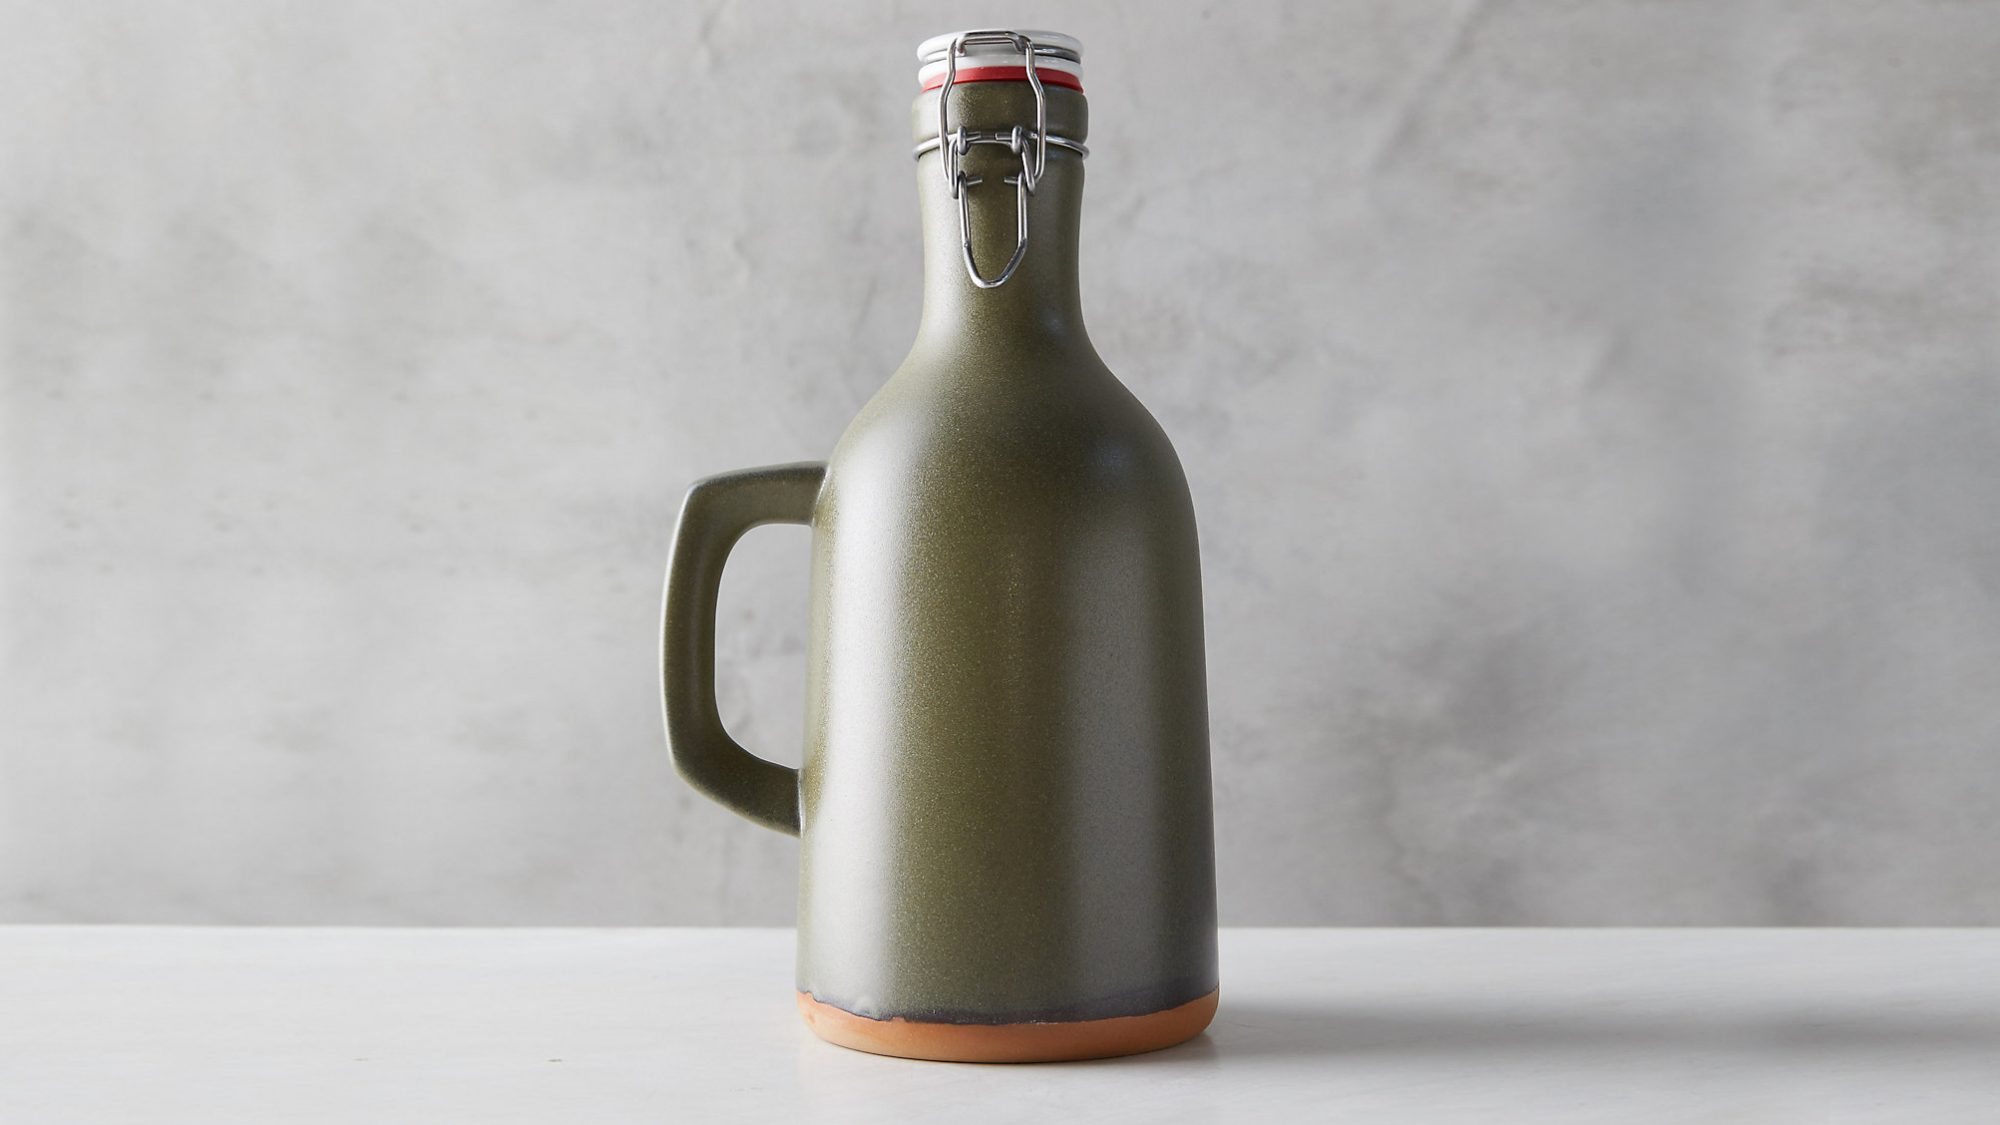 Best gifts for boyfriends - growler tout